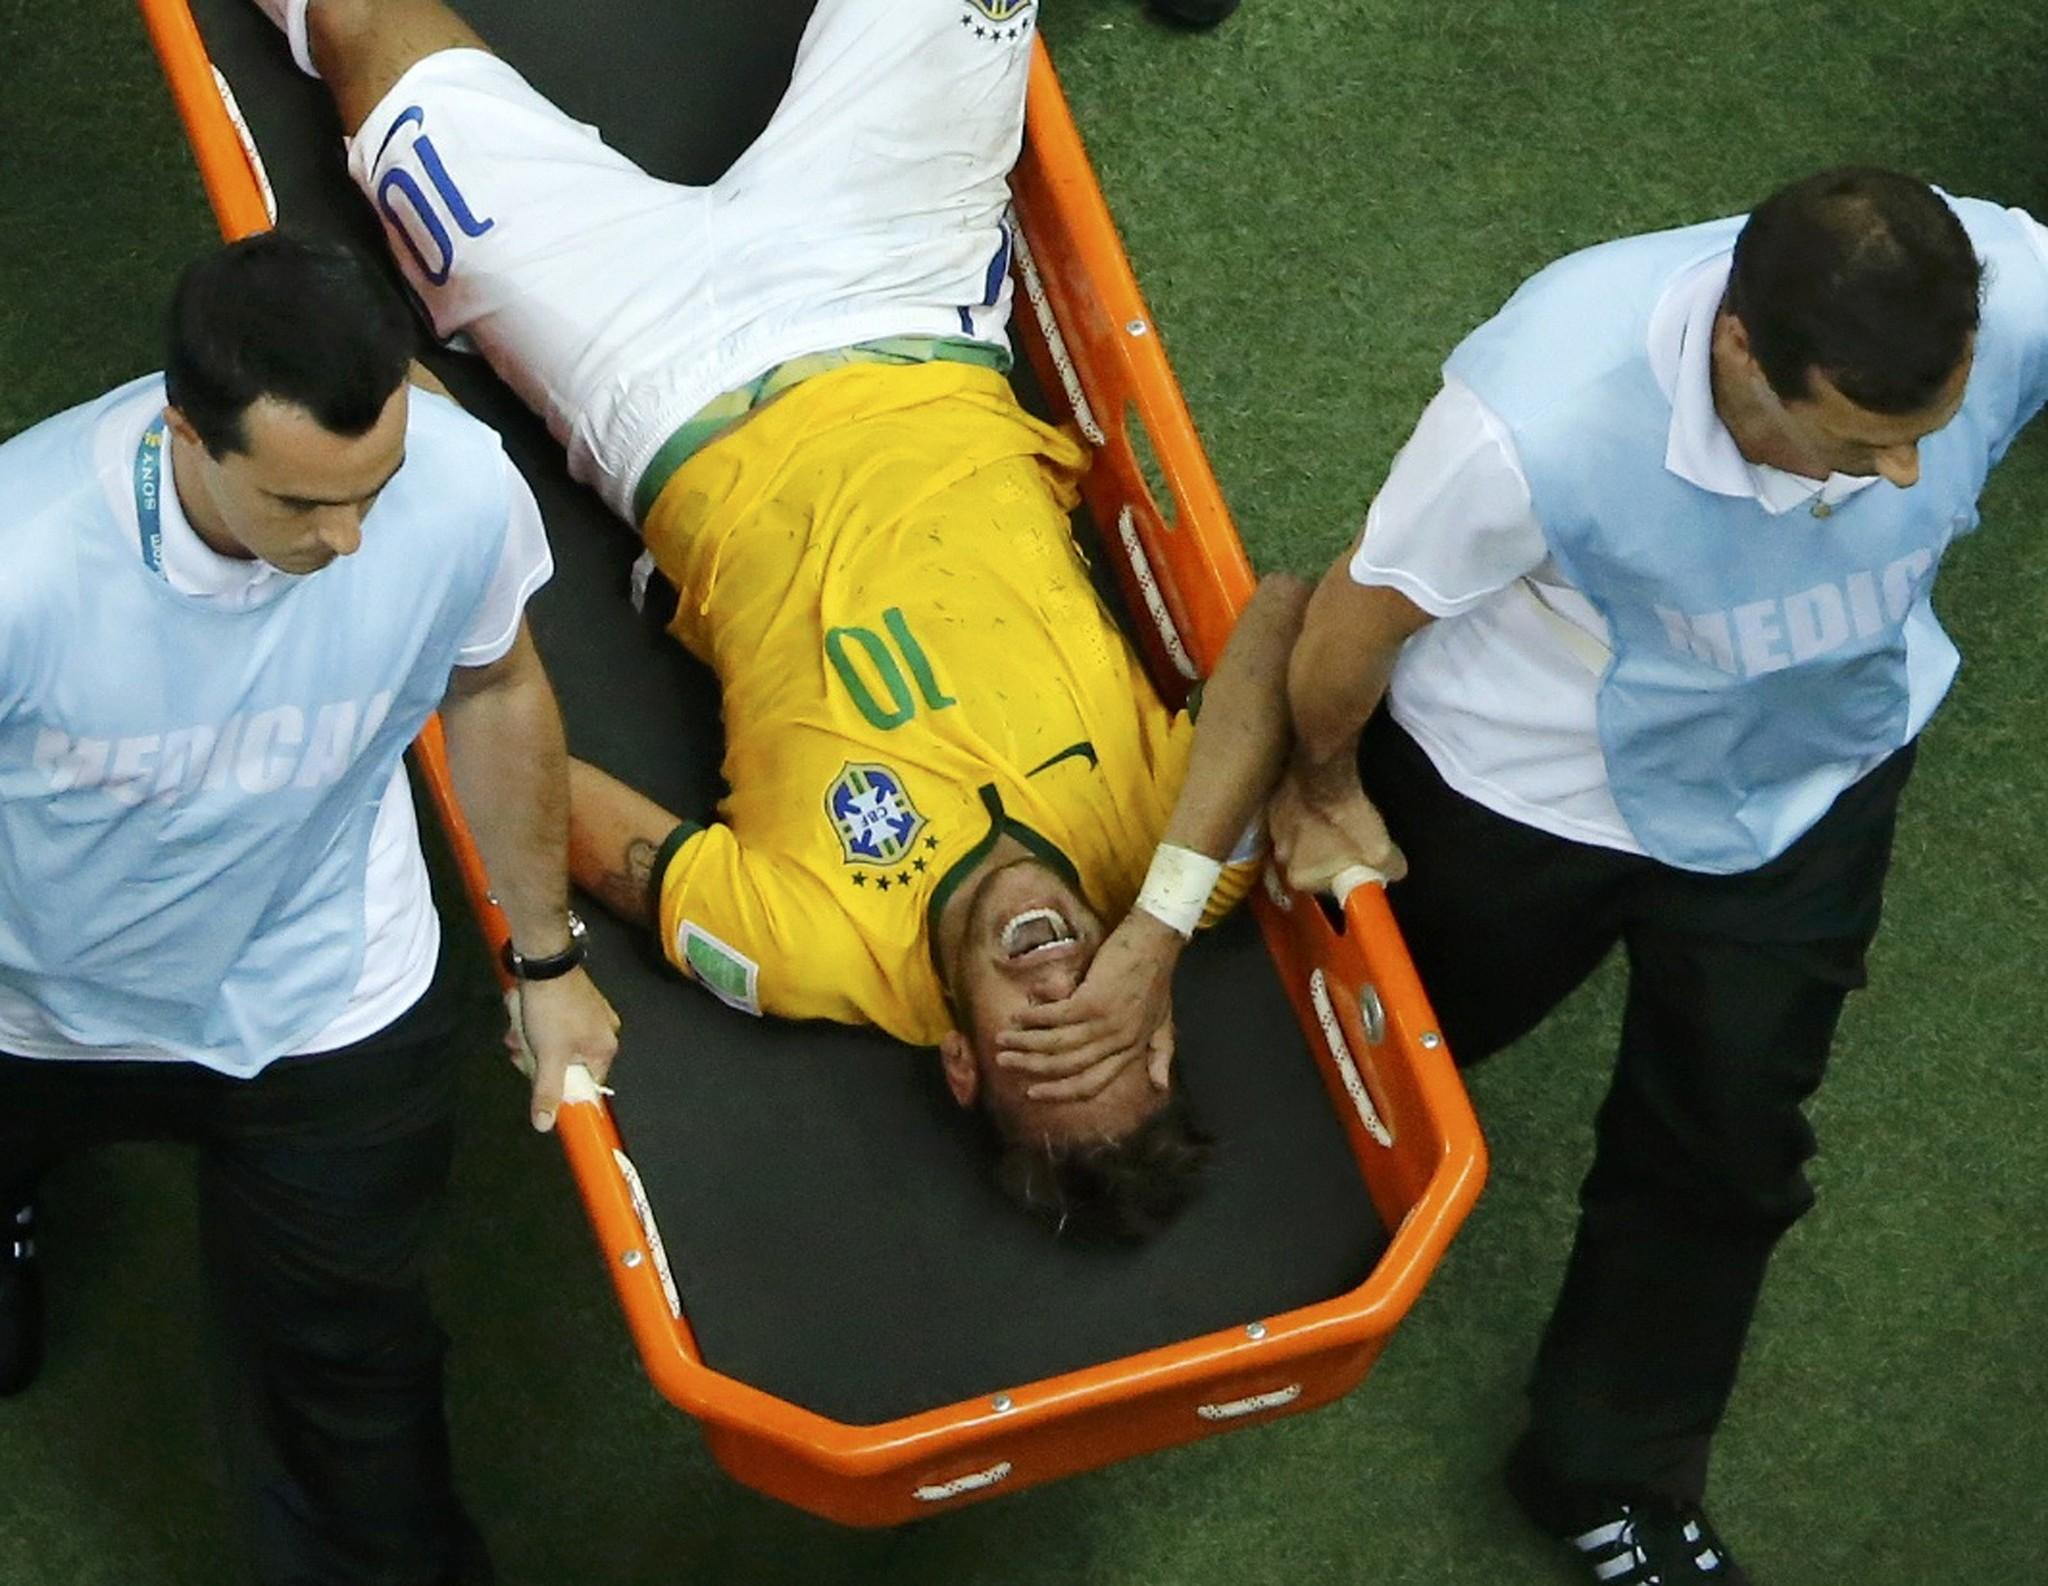 Brazil's Neymar grimaces as he is carried off the pitch after being injured.